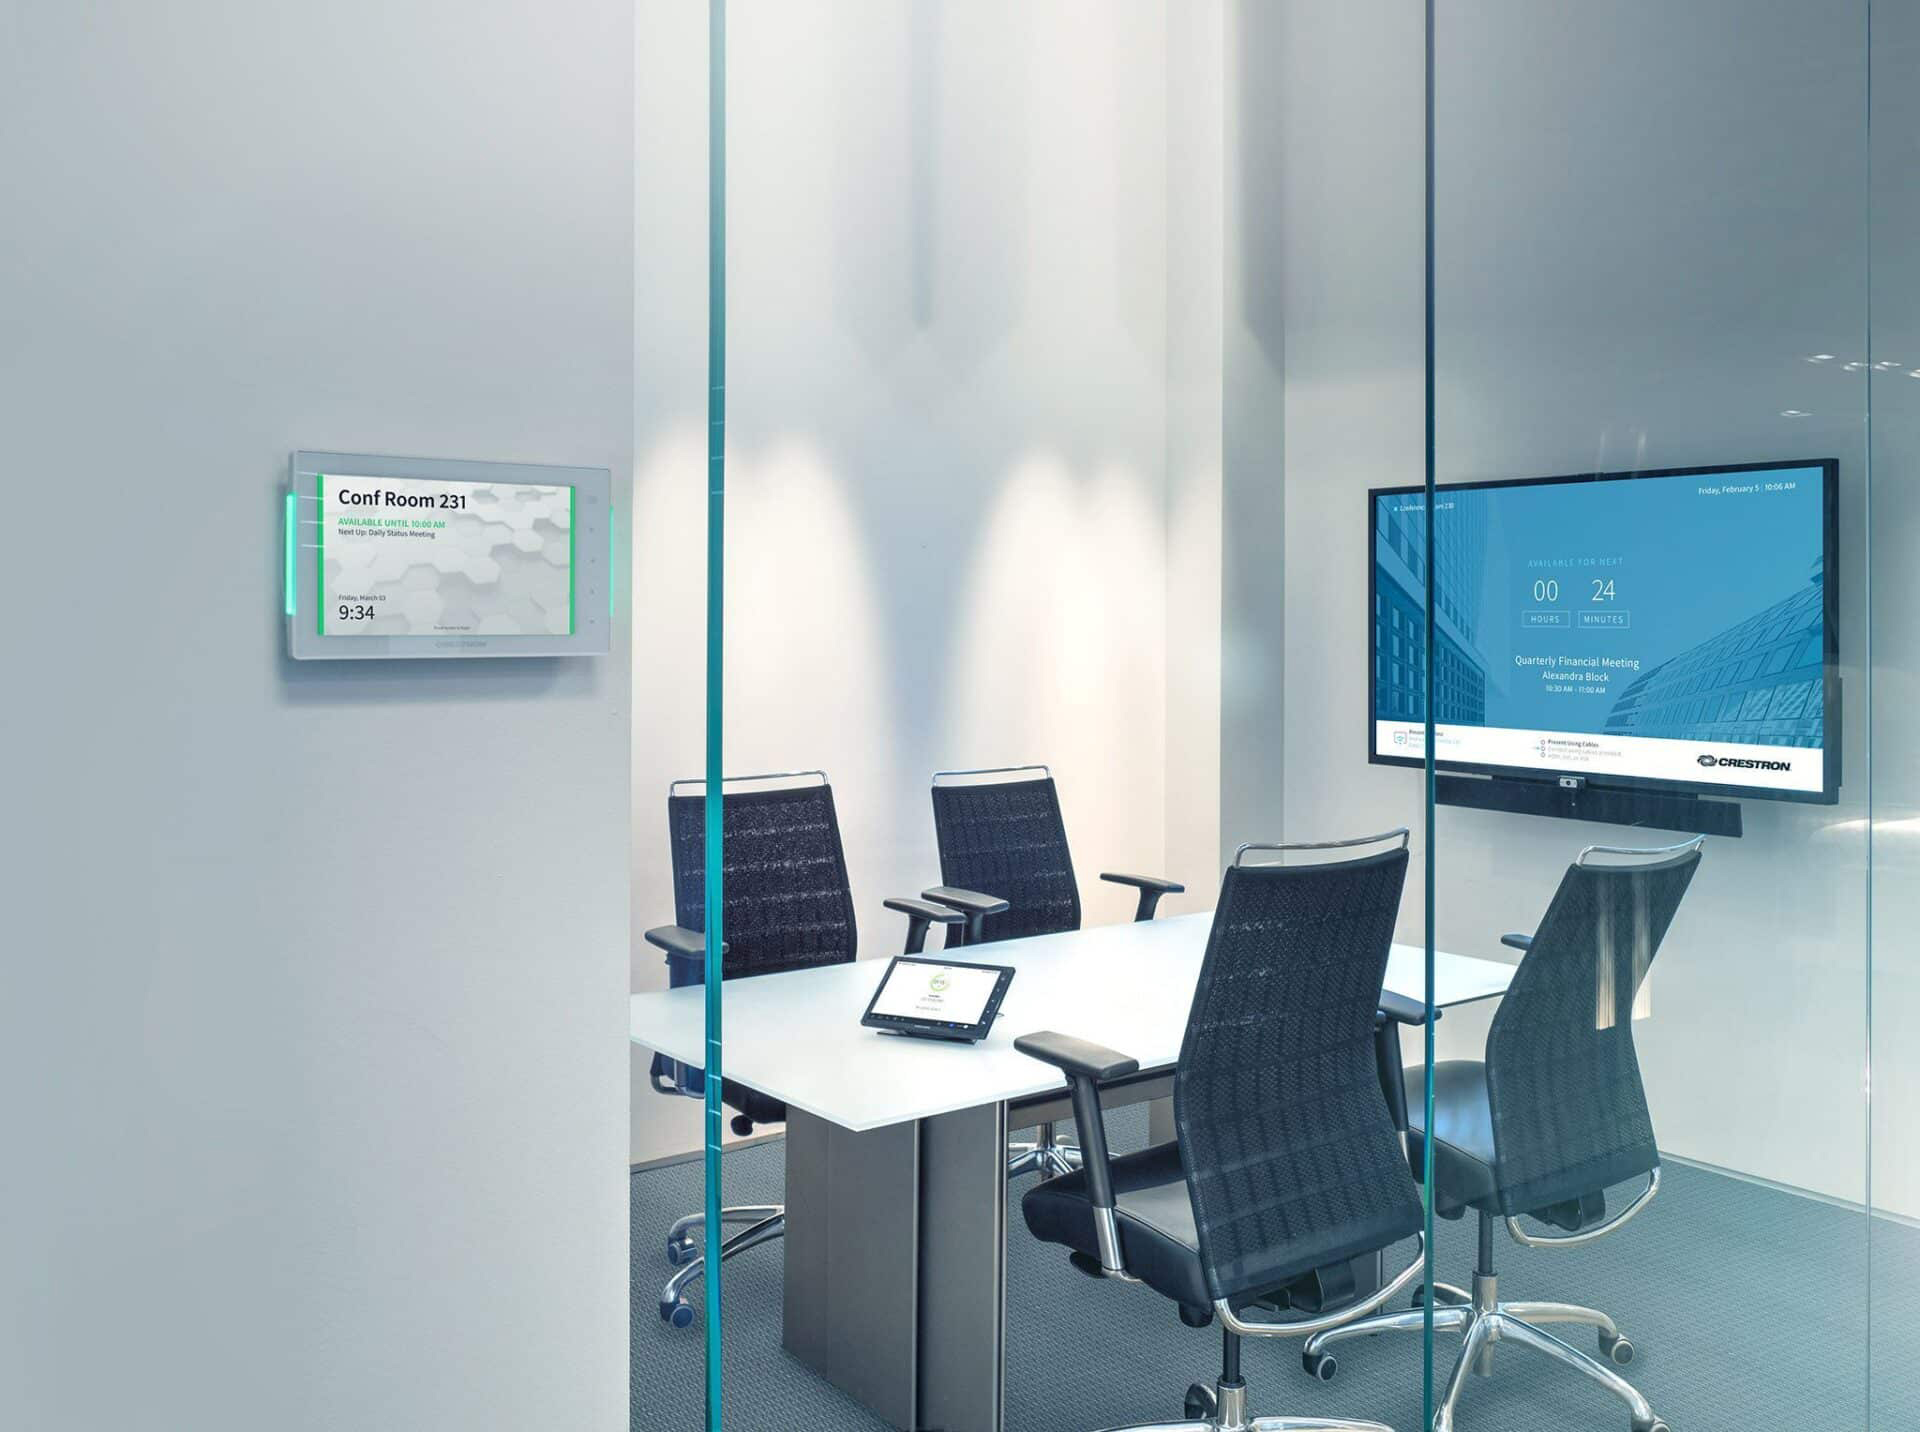 When Is It Time for Your Organization to Upgrade Audiovisual Equipment in Meeting Spaces?